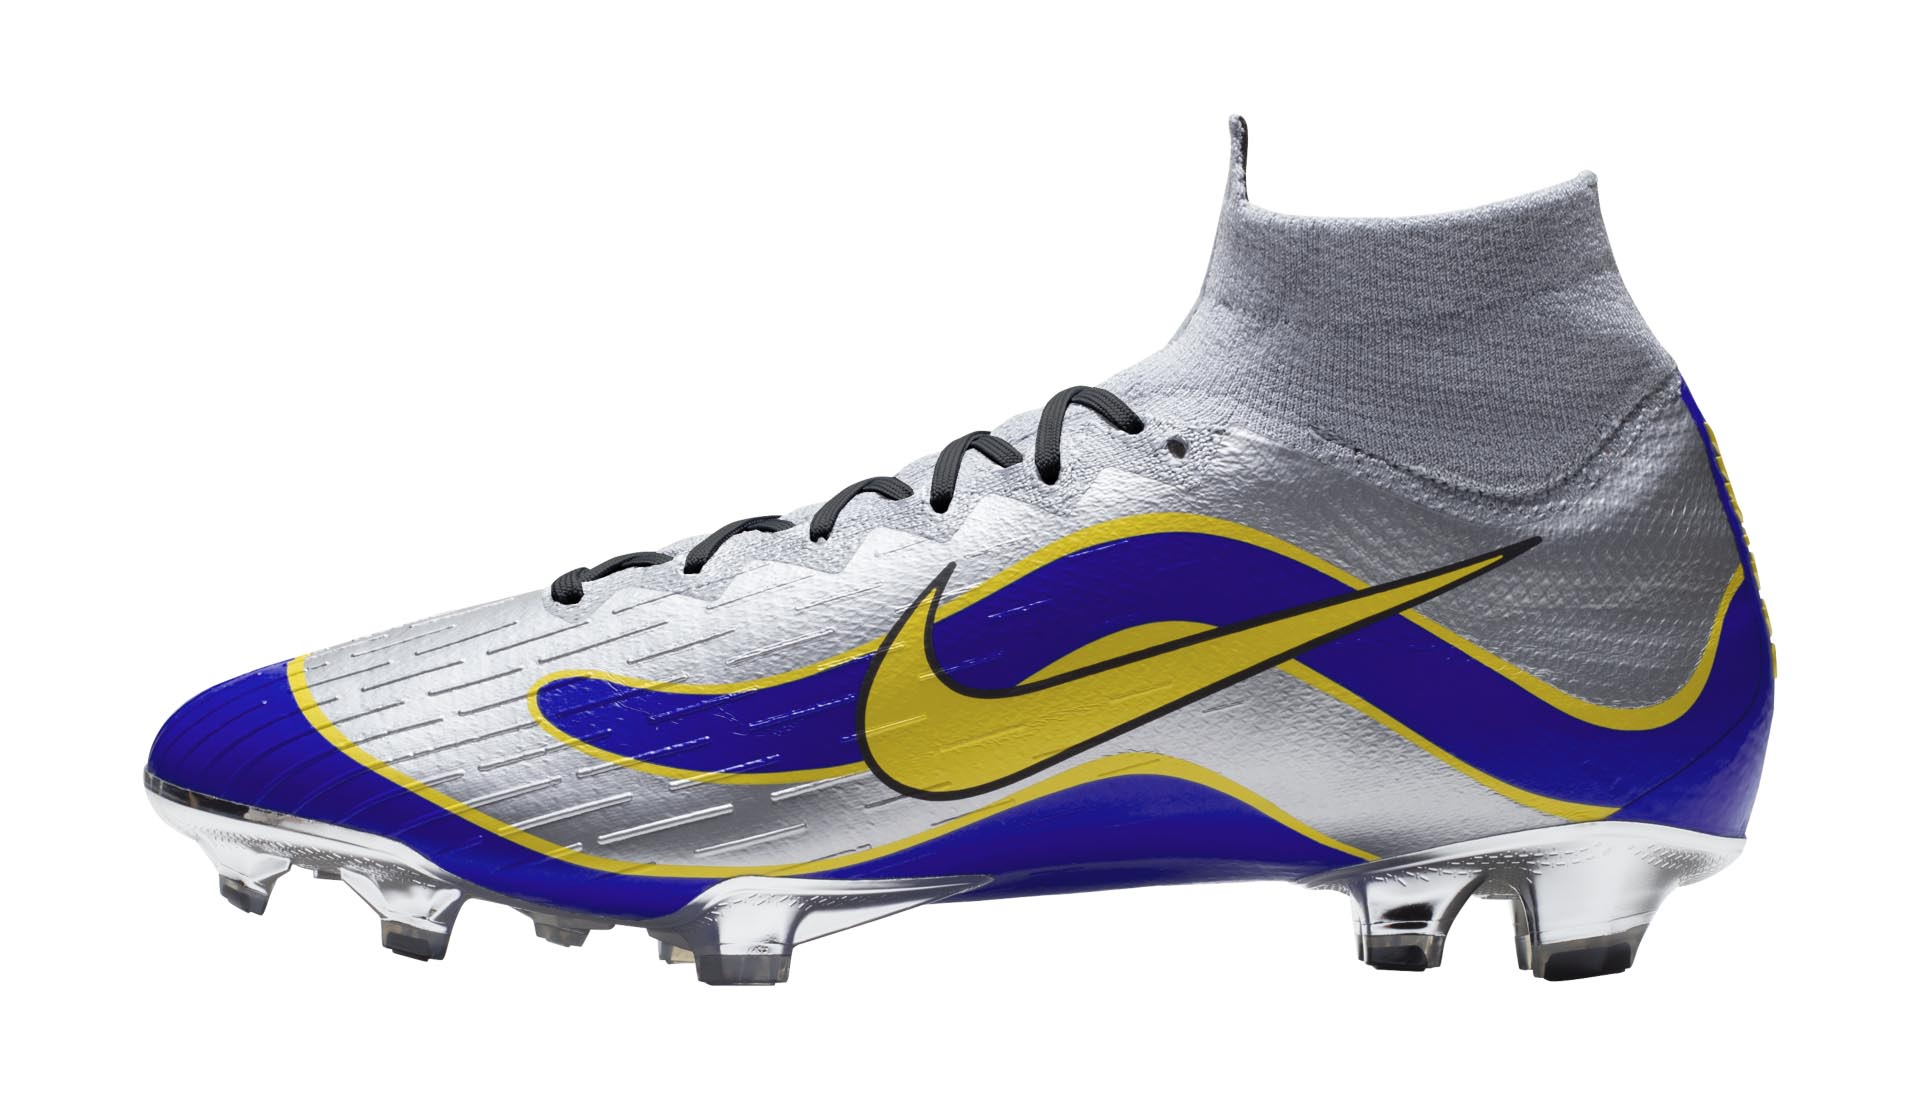 Nike Launch The Mercurial Heritage